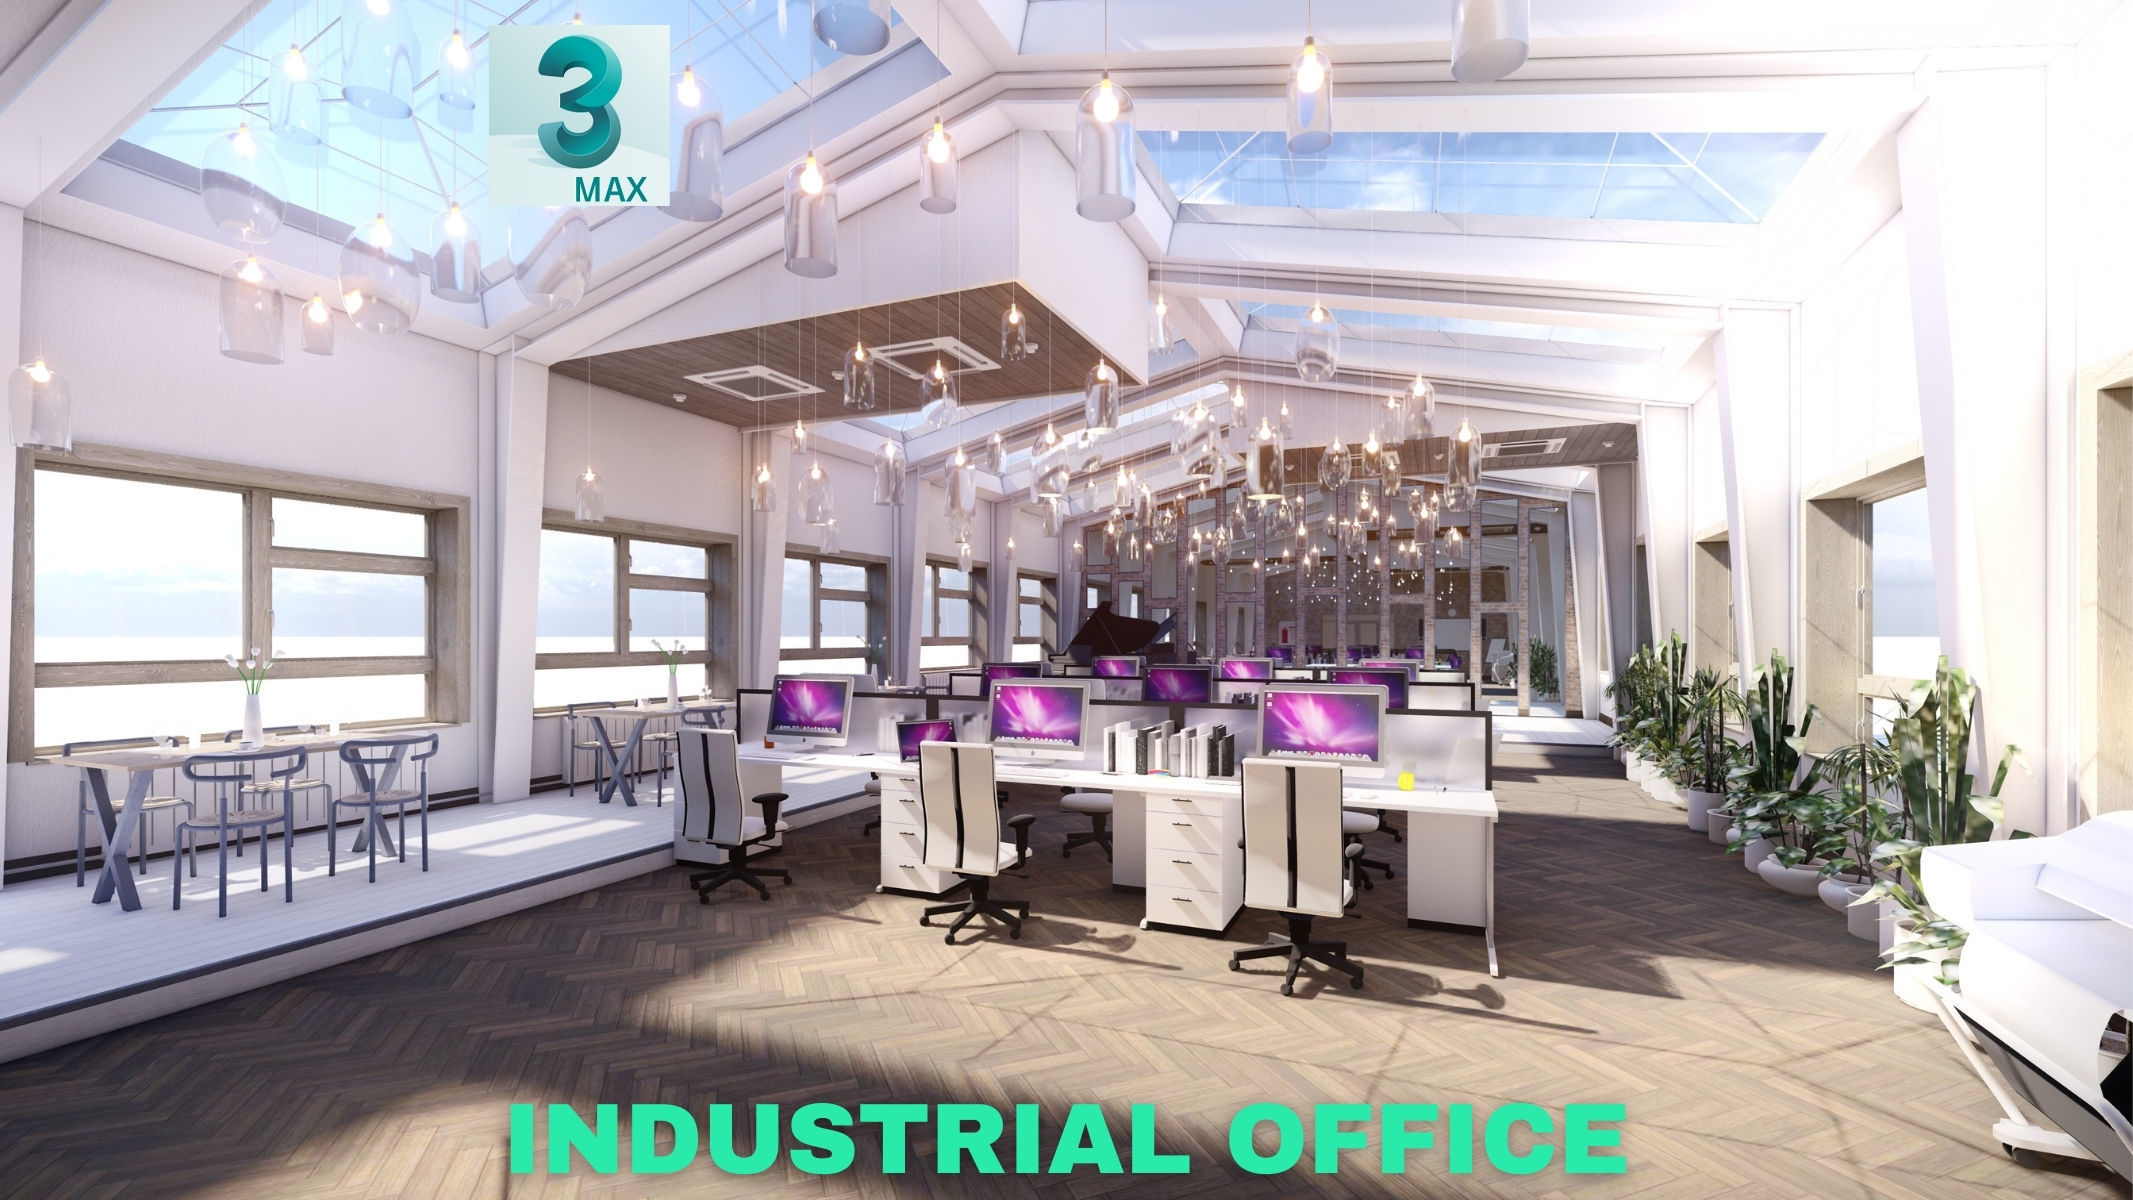 Industrial Office on Attic with Skylights Scene - 3DS MAX